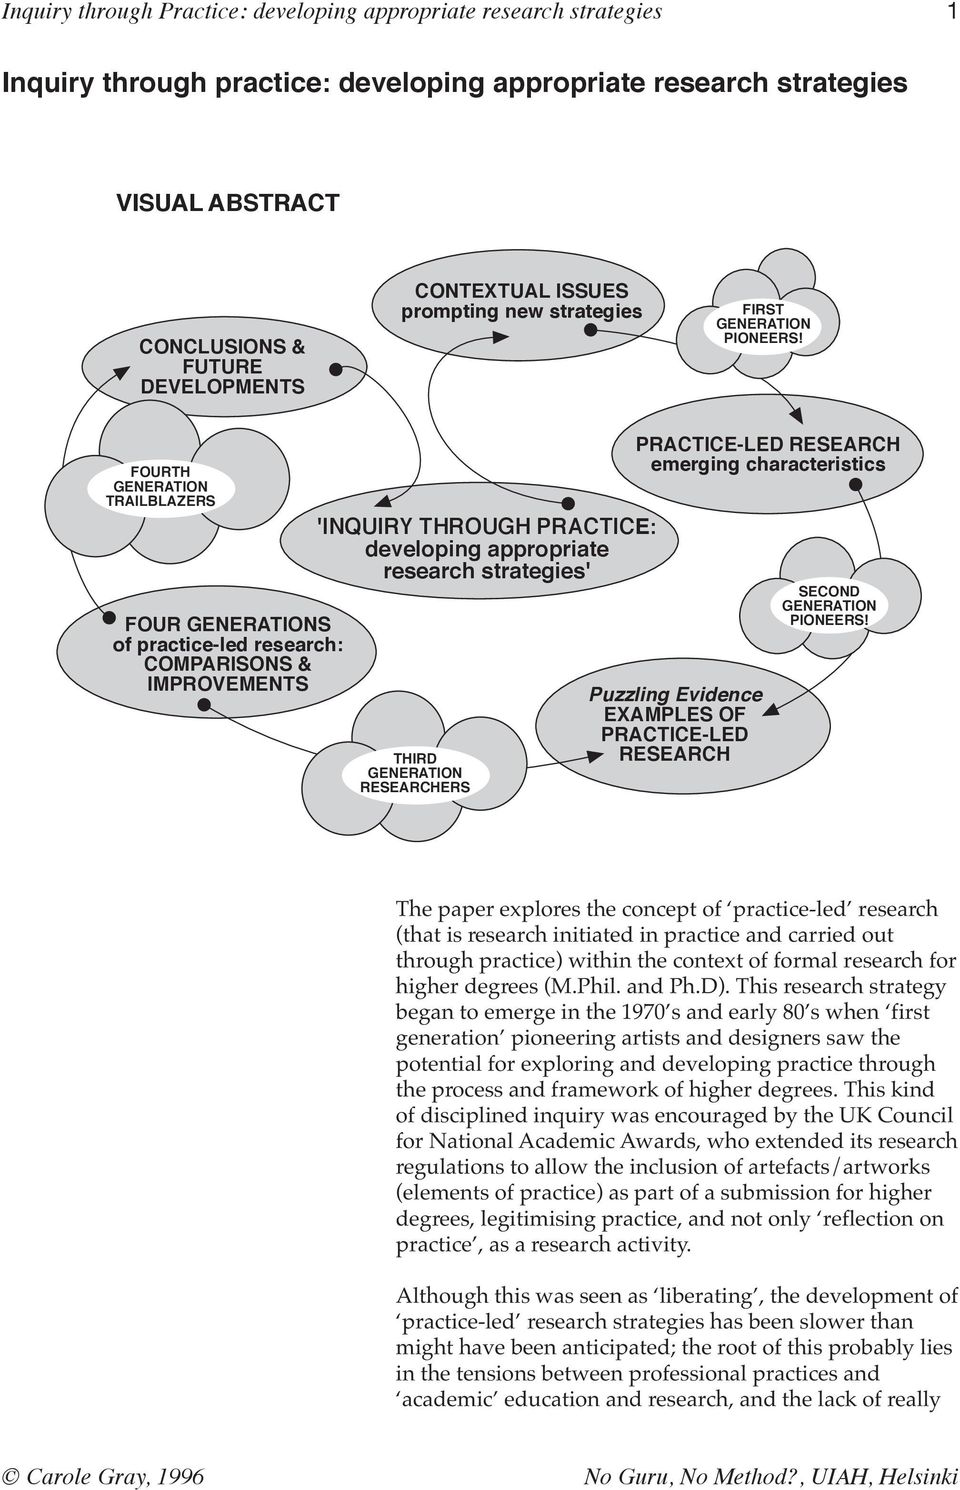 FOURTH GENERATION TRAILBLAZERS FOUR GENERATIONS of practice-led research: COMPARISONS & IMPROVEMENTS 'INQUIRY THROUGH PRACTICE: developing appropriate research strategies' THIRD GENERATION